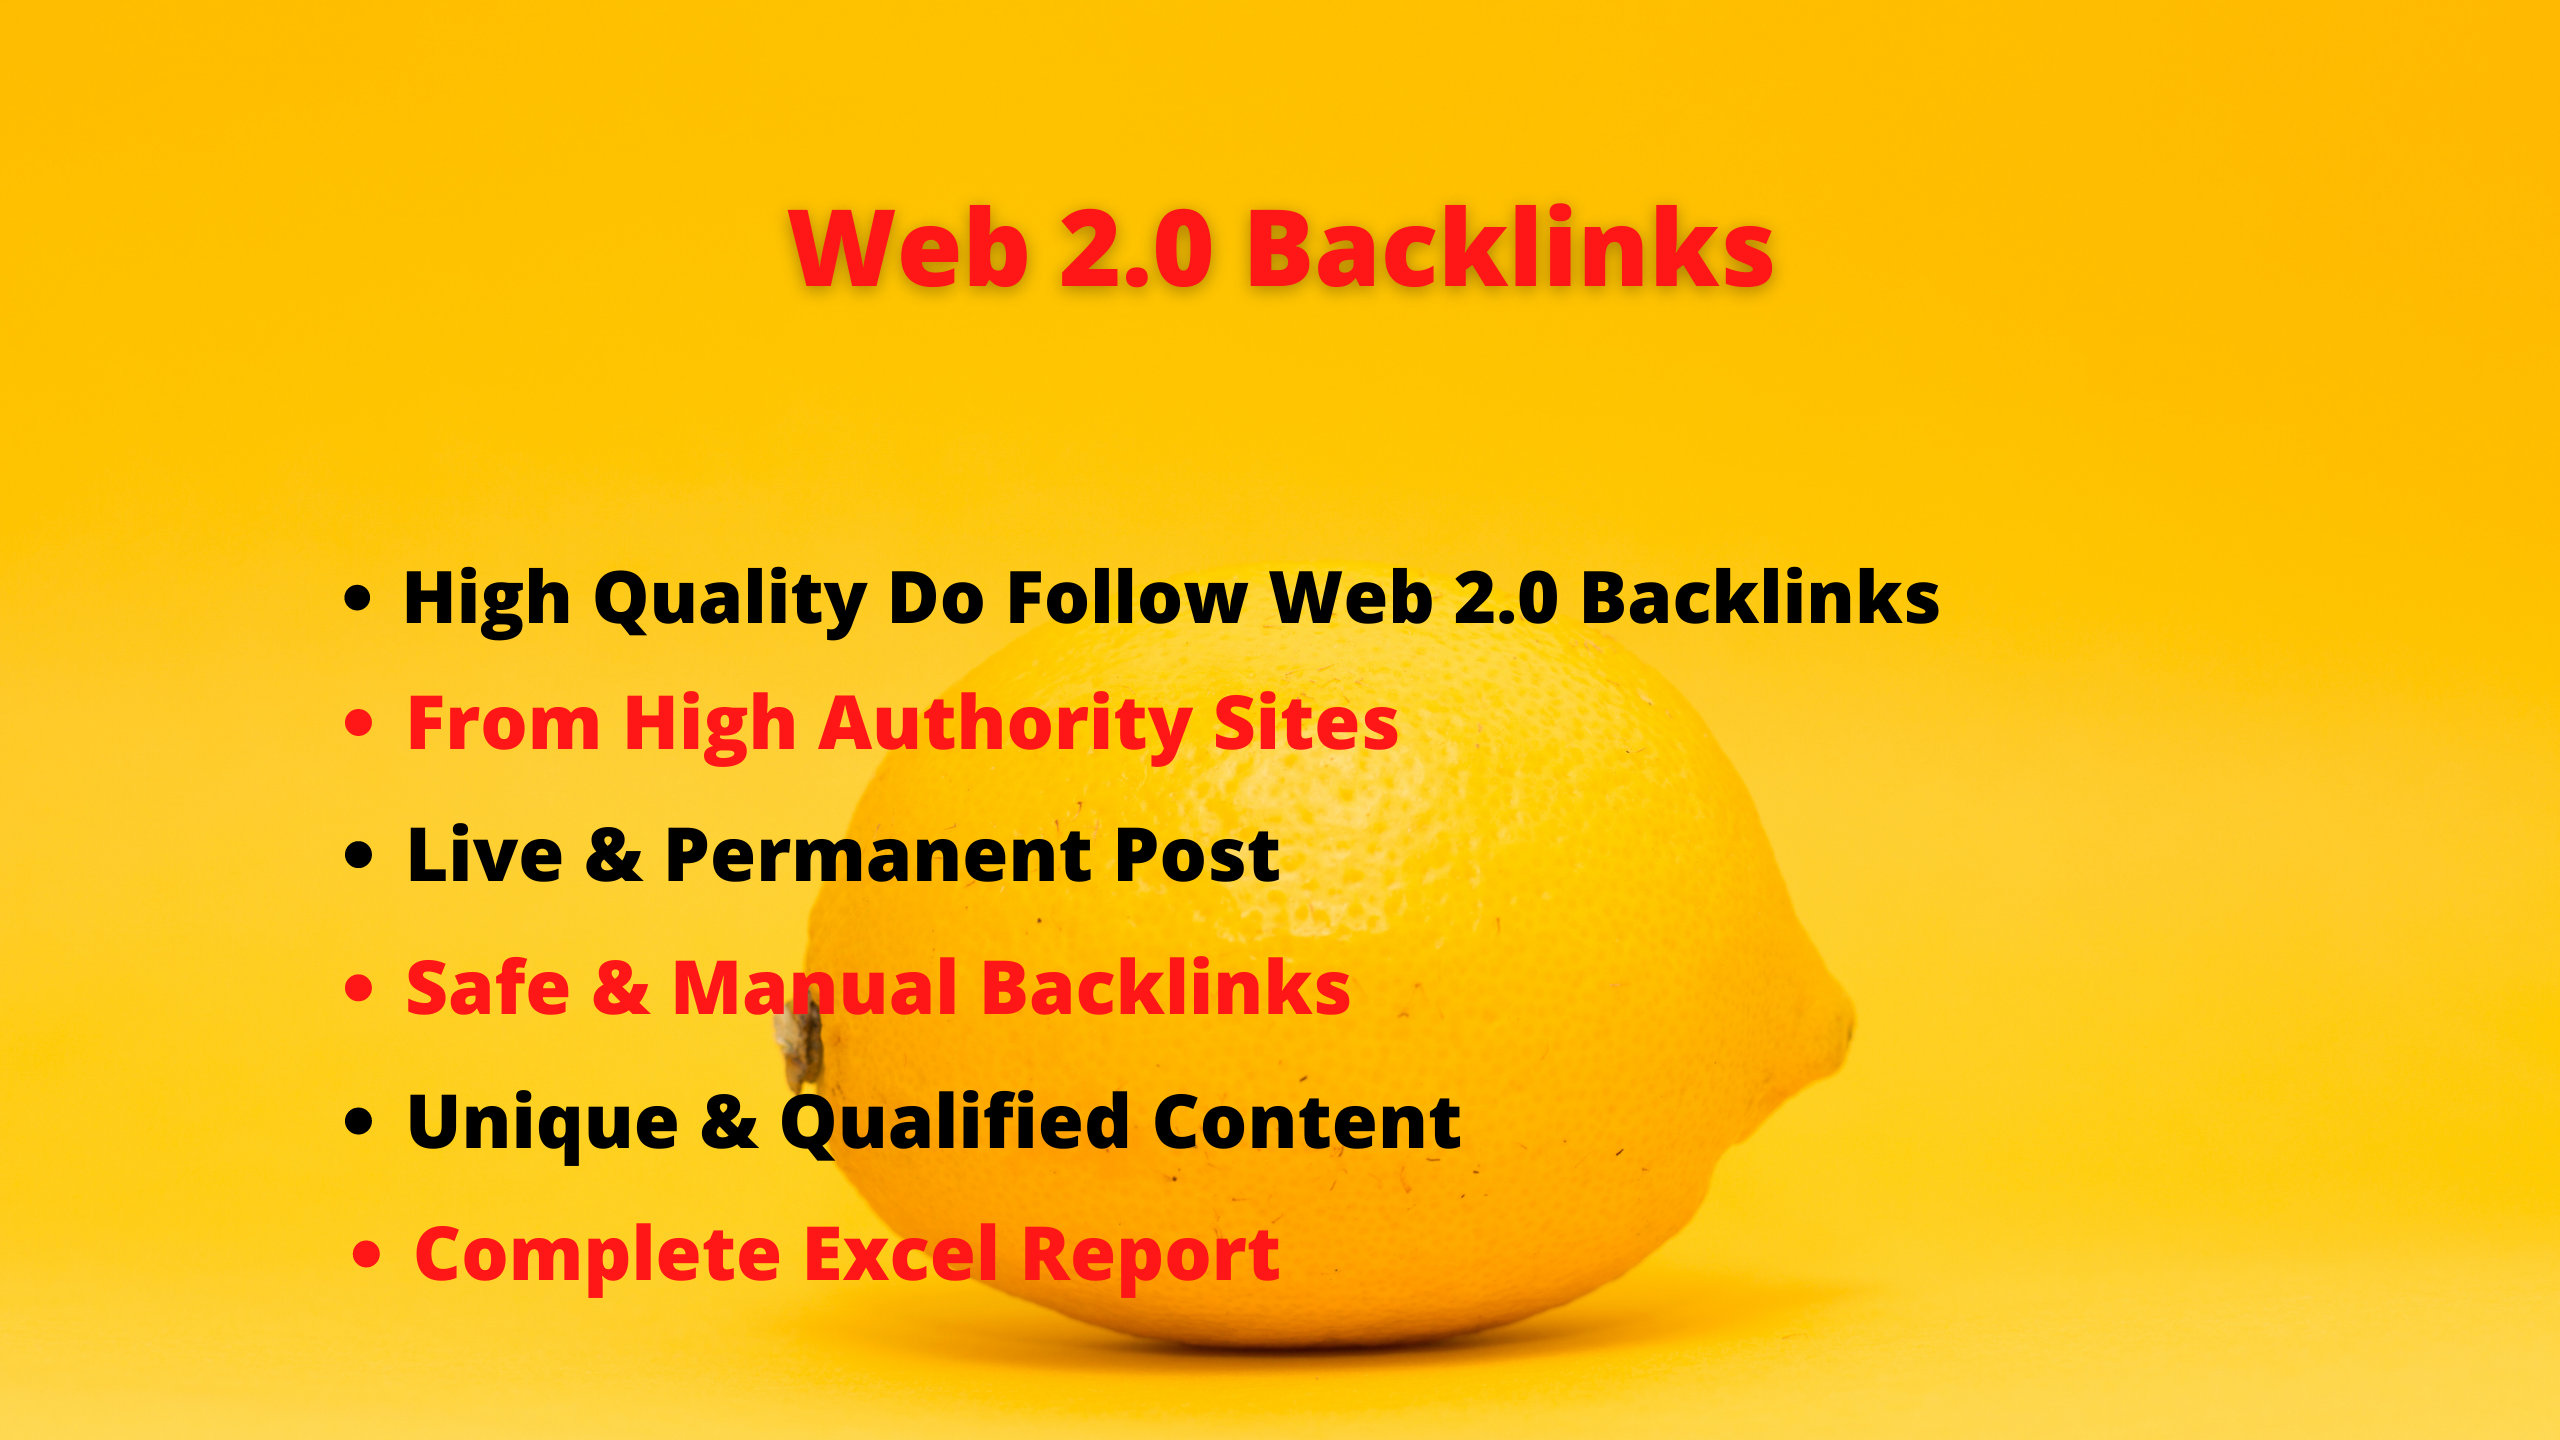 I will build 20 web 2.0 backlinks